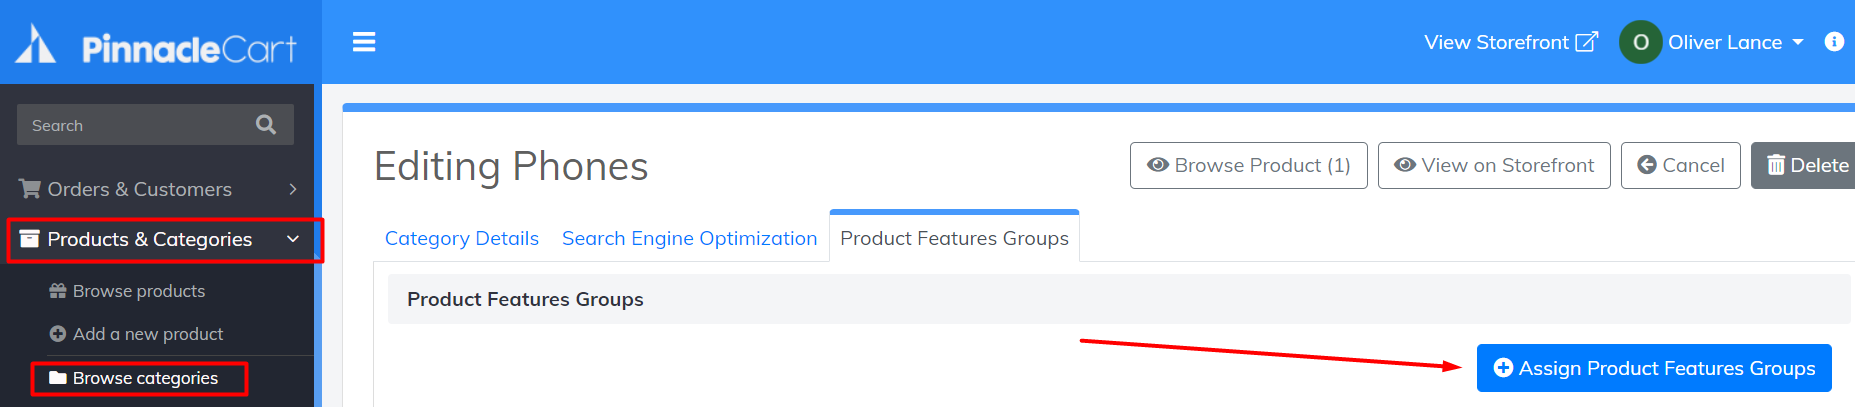 assign product features groups